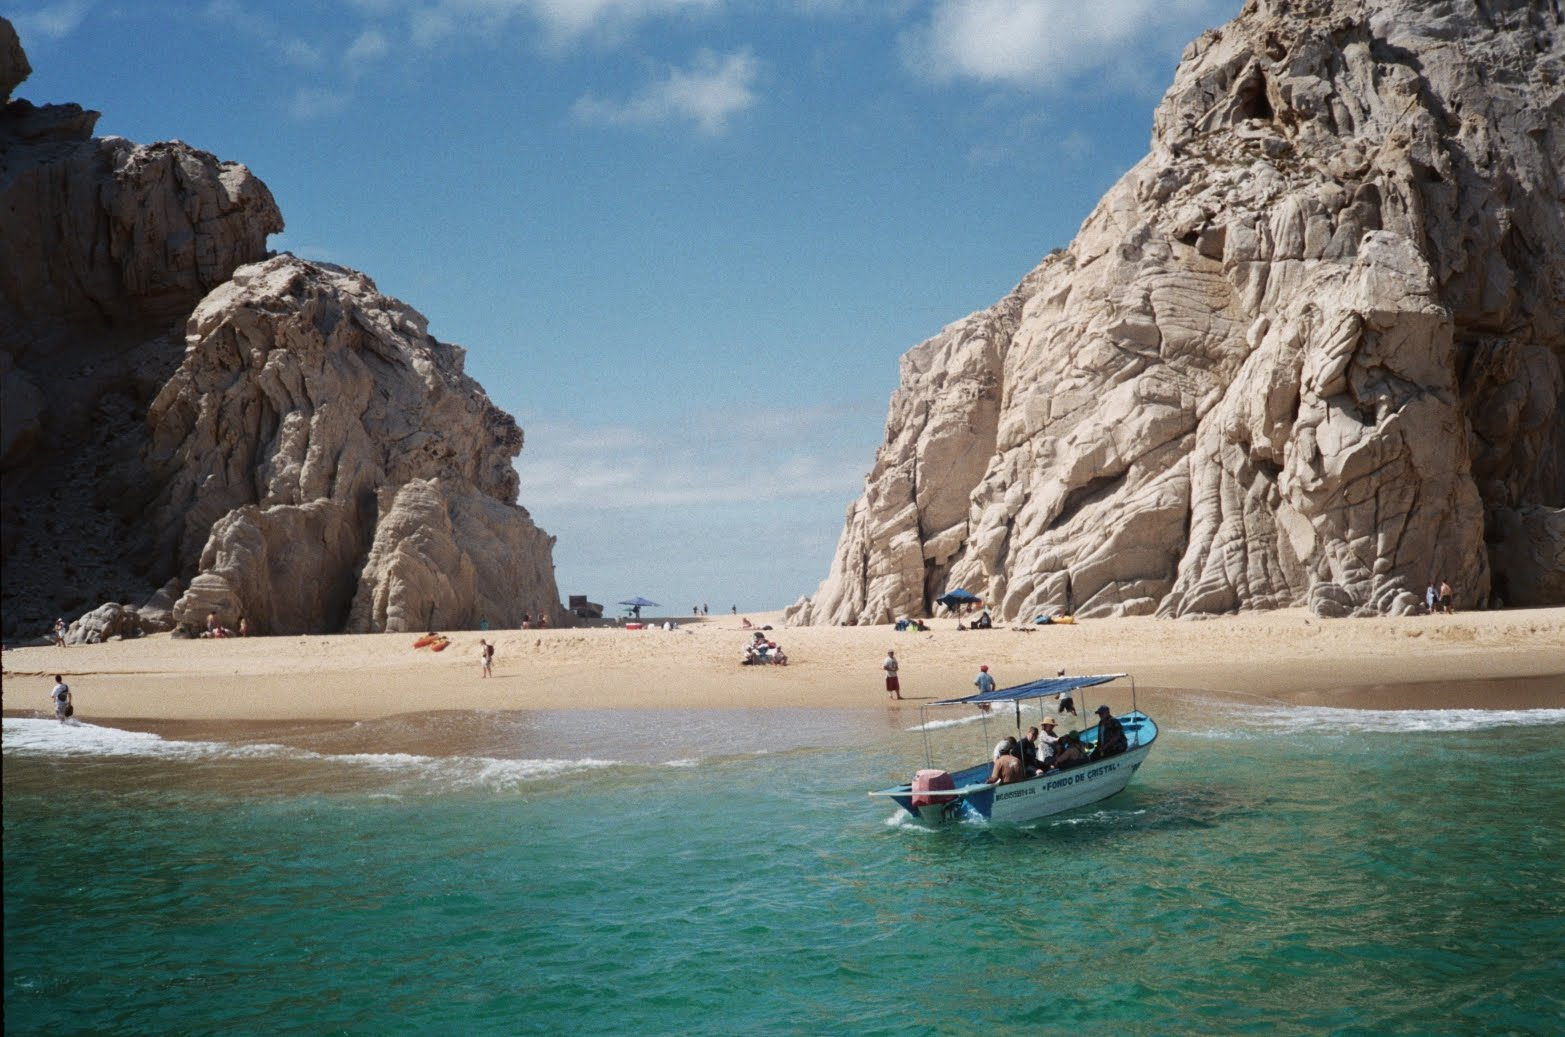 lovers beach baja california sur mexico hd photo 7 | HD Wallpapers ...